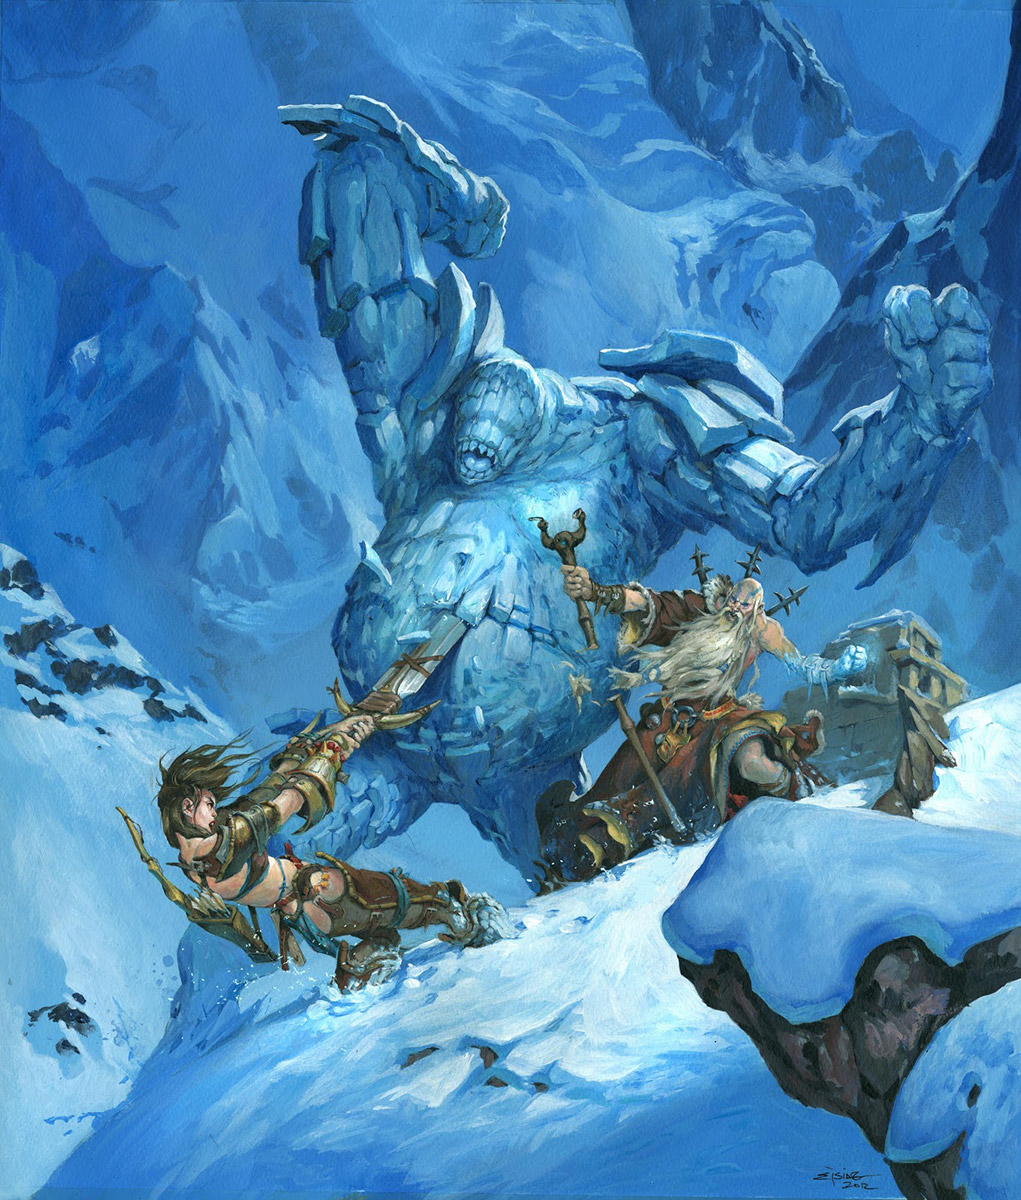 Ice Golem vs Barbarian